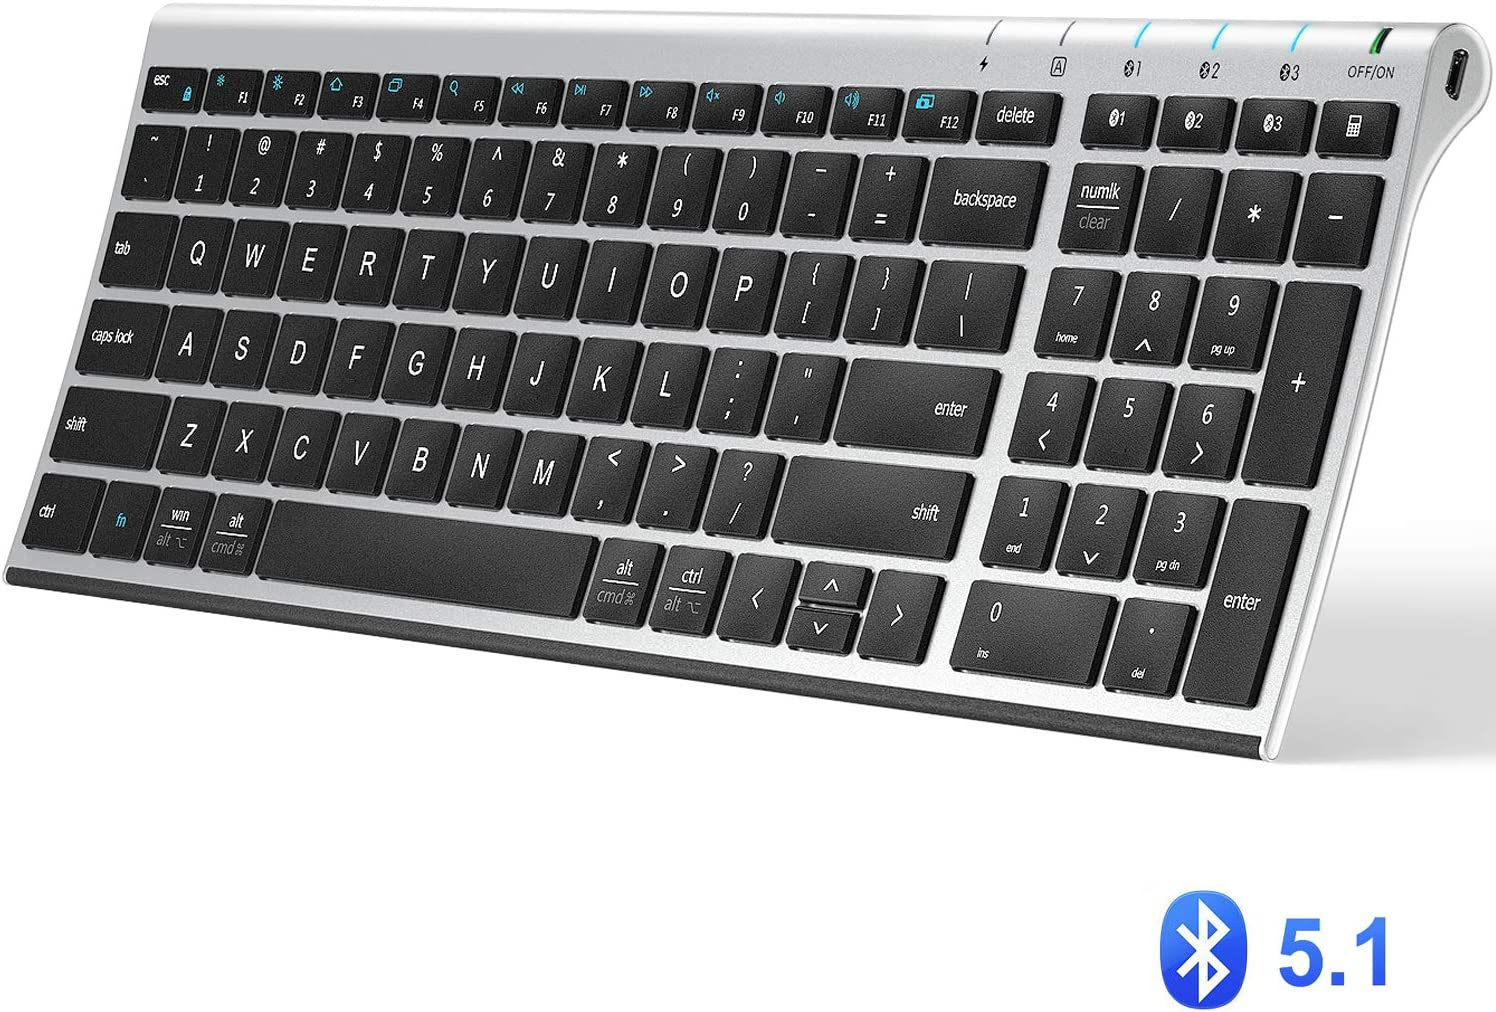 iClever BK10 Bluetooth Keyboard, Multi Device Keyboard Rechargeable Bluetooth 5.1 with Number Pad Ergonomic Design Full Size Stable Connection Keyboard for iPad, iPhone, Mac, iOS, Android, Windows